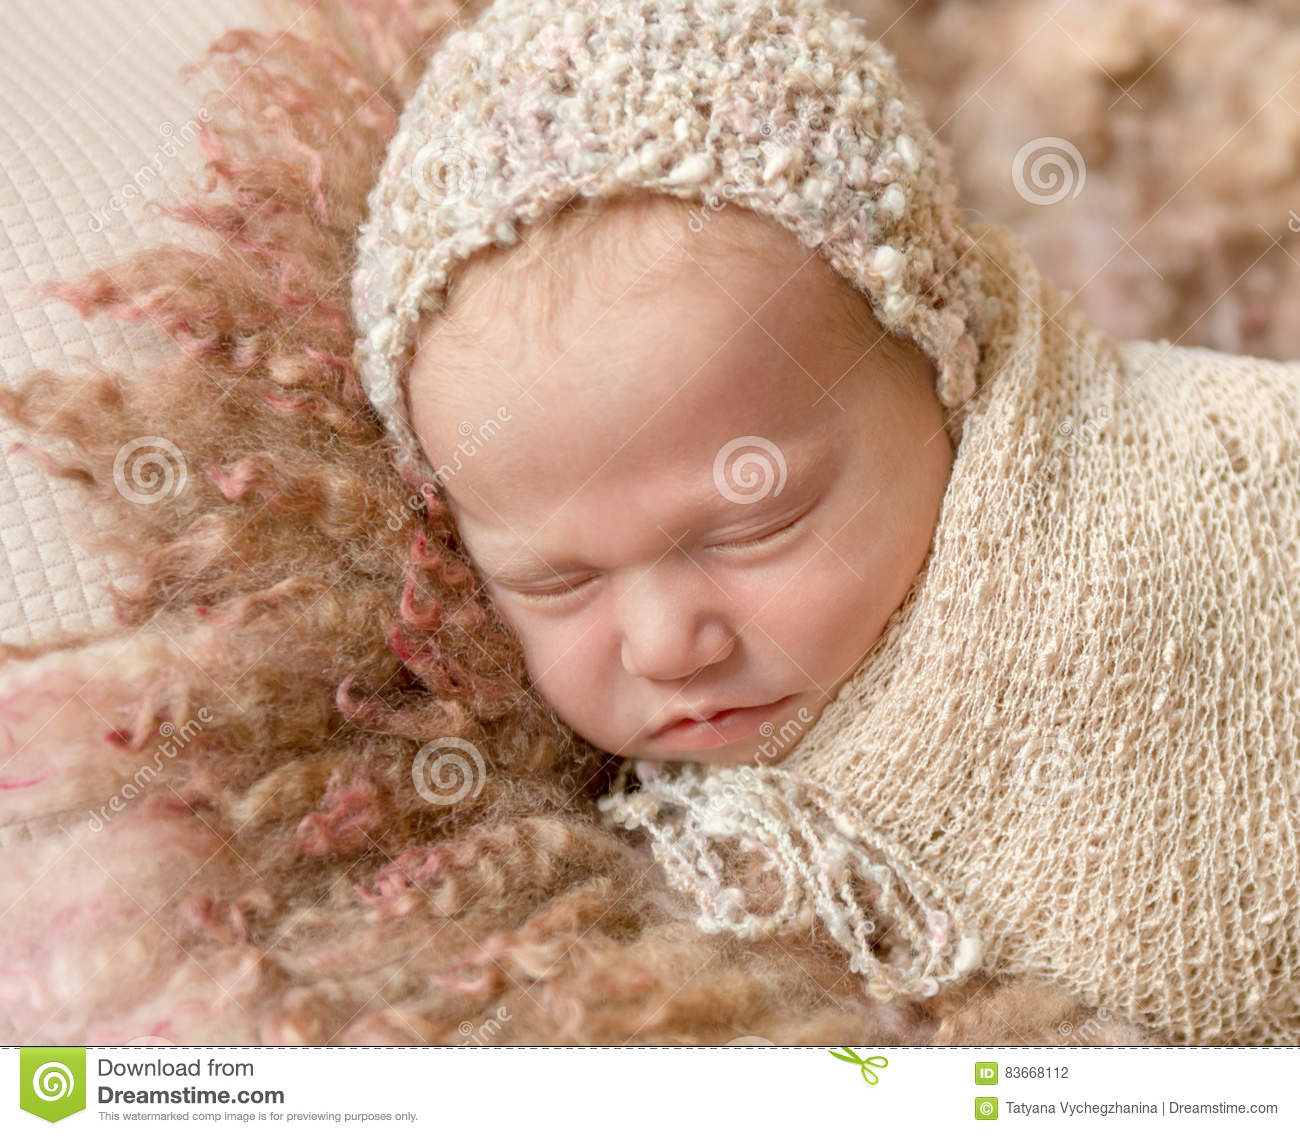 Cute Sleeping Baby In Hat On Fluffy Blanket Stock Photo ...